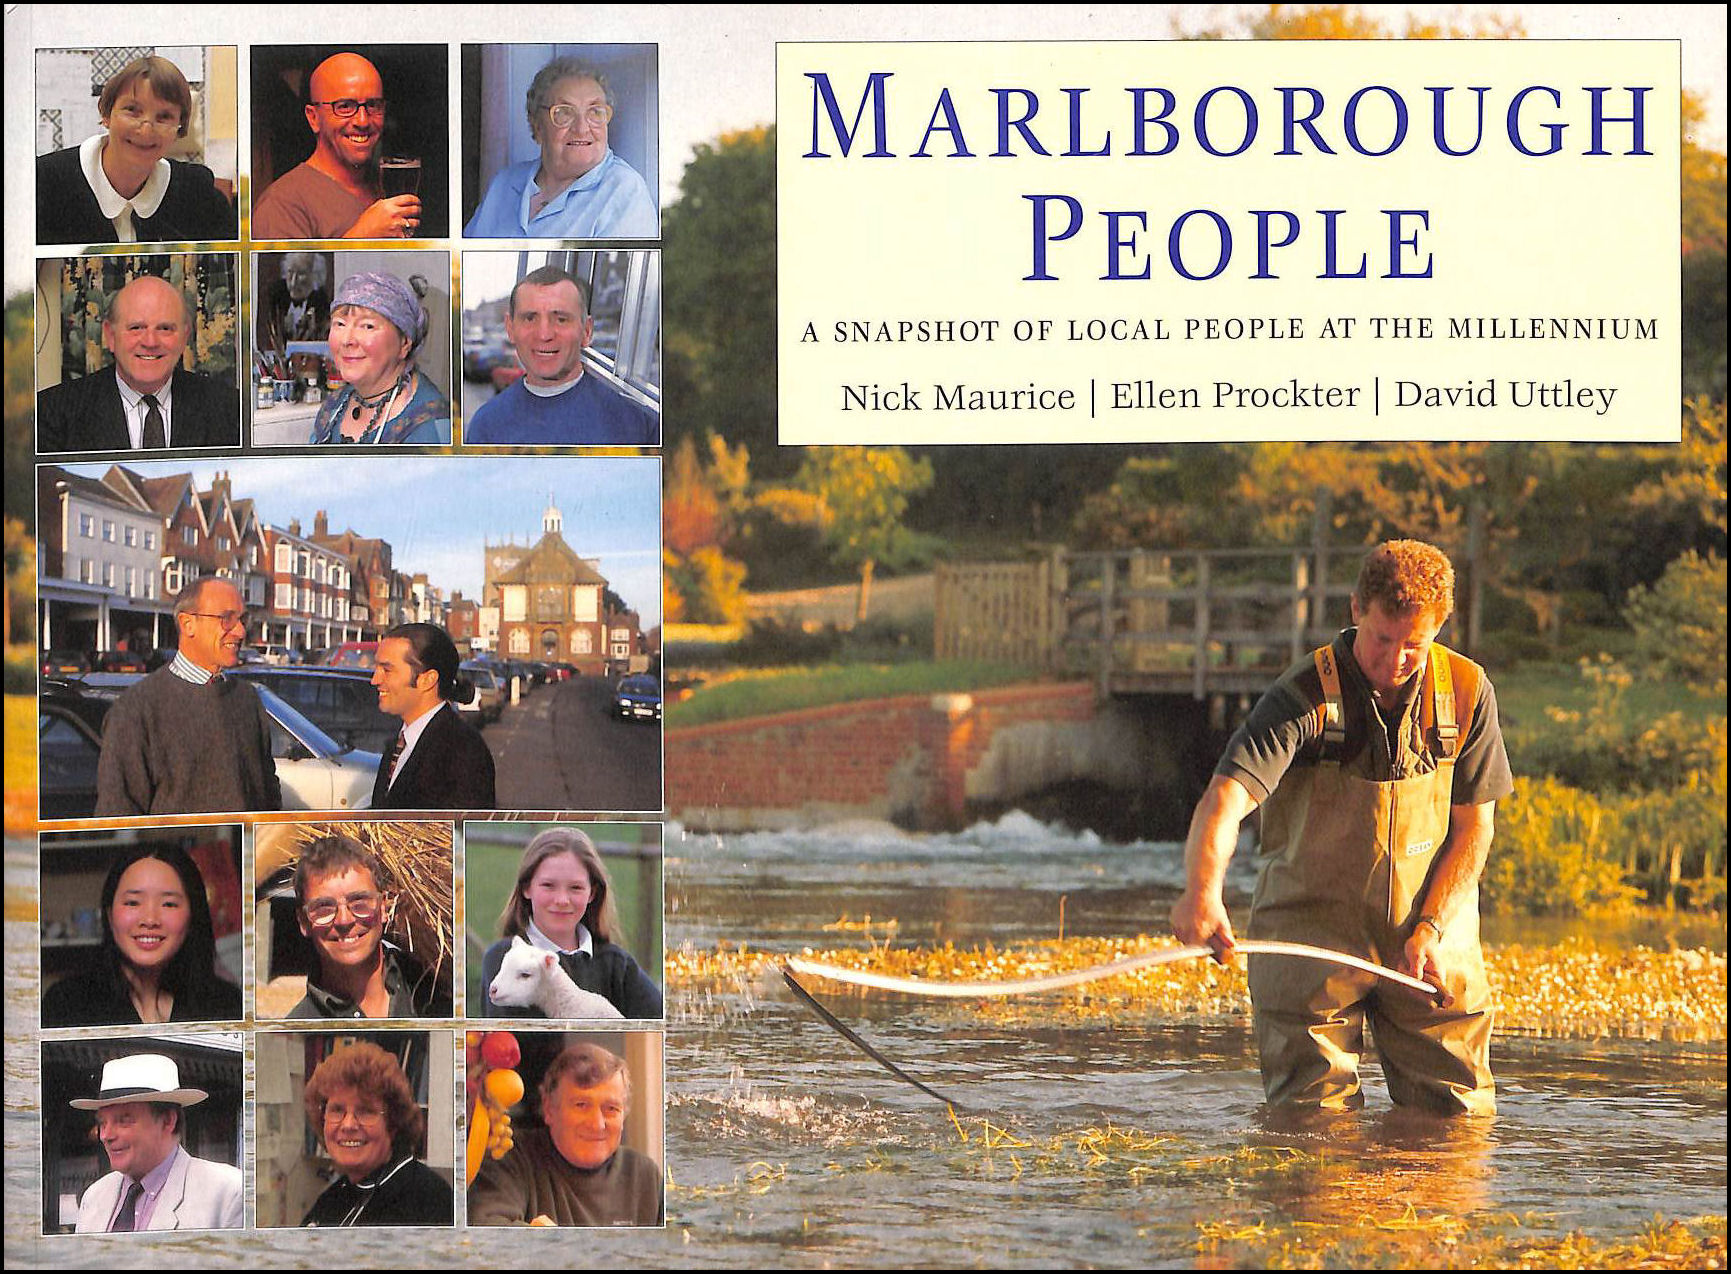 Image for Marlborough people: A snapshot of local people at the millennium